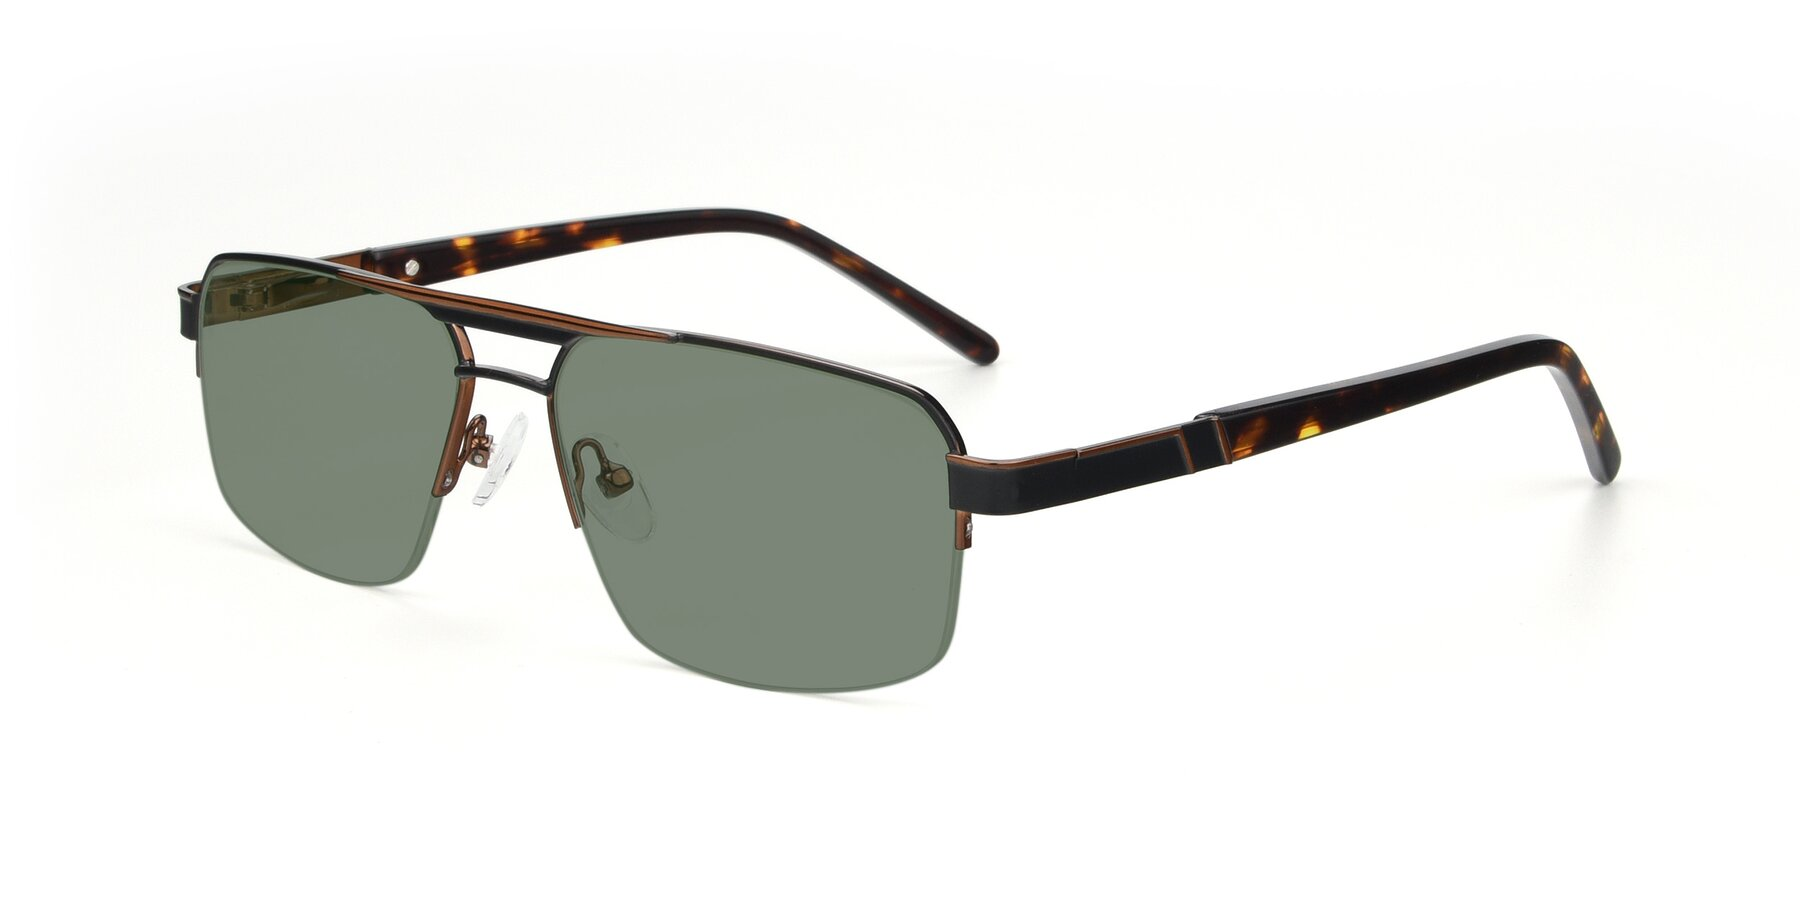 Angle of 19004 in Black-Bronze with Medium Green Tinted Lenses